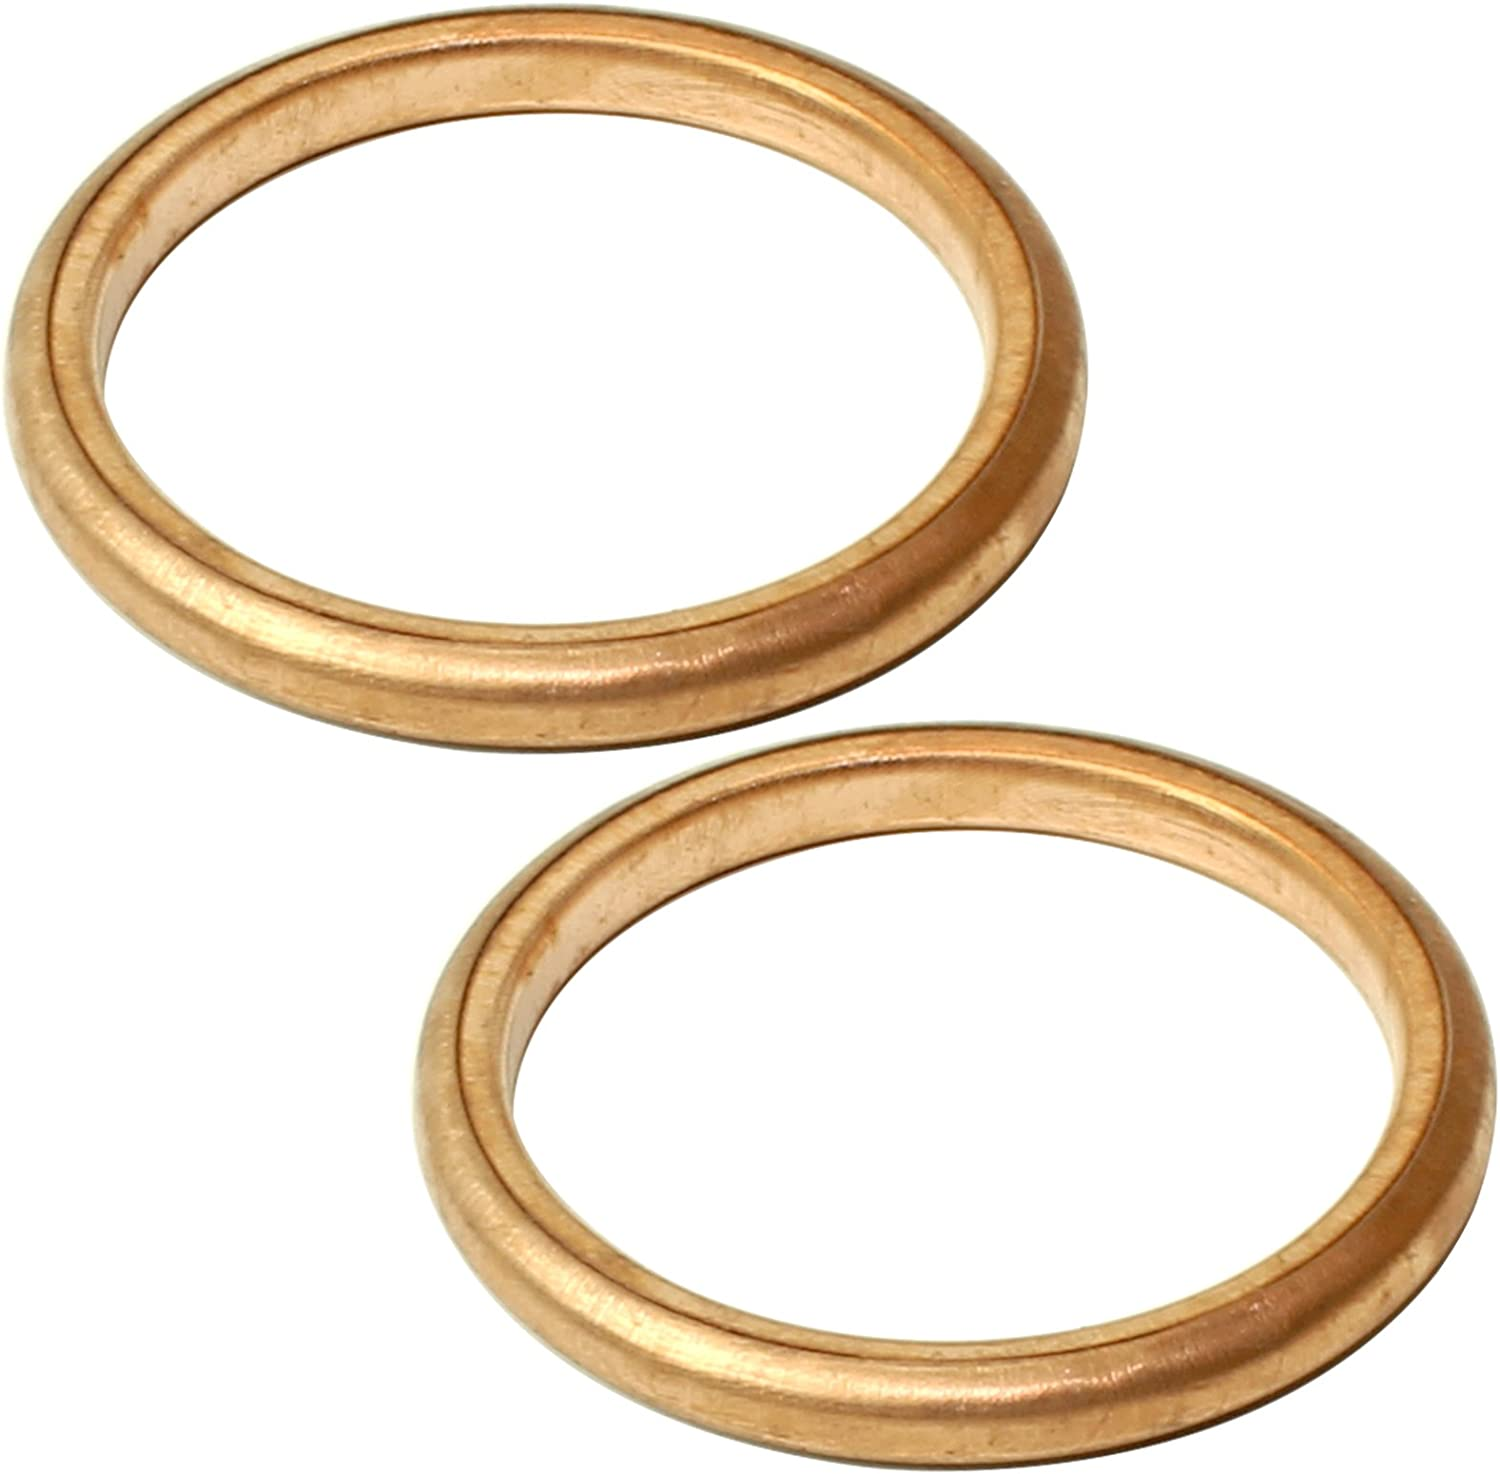 Caltric 2 Exhaust Pipe Gaskets Popular brand Tulsa Mall Trx400Ex Honda Compatible Tr With